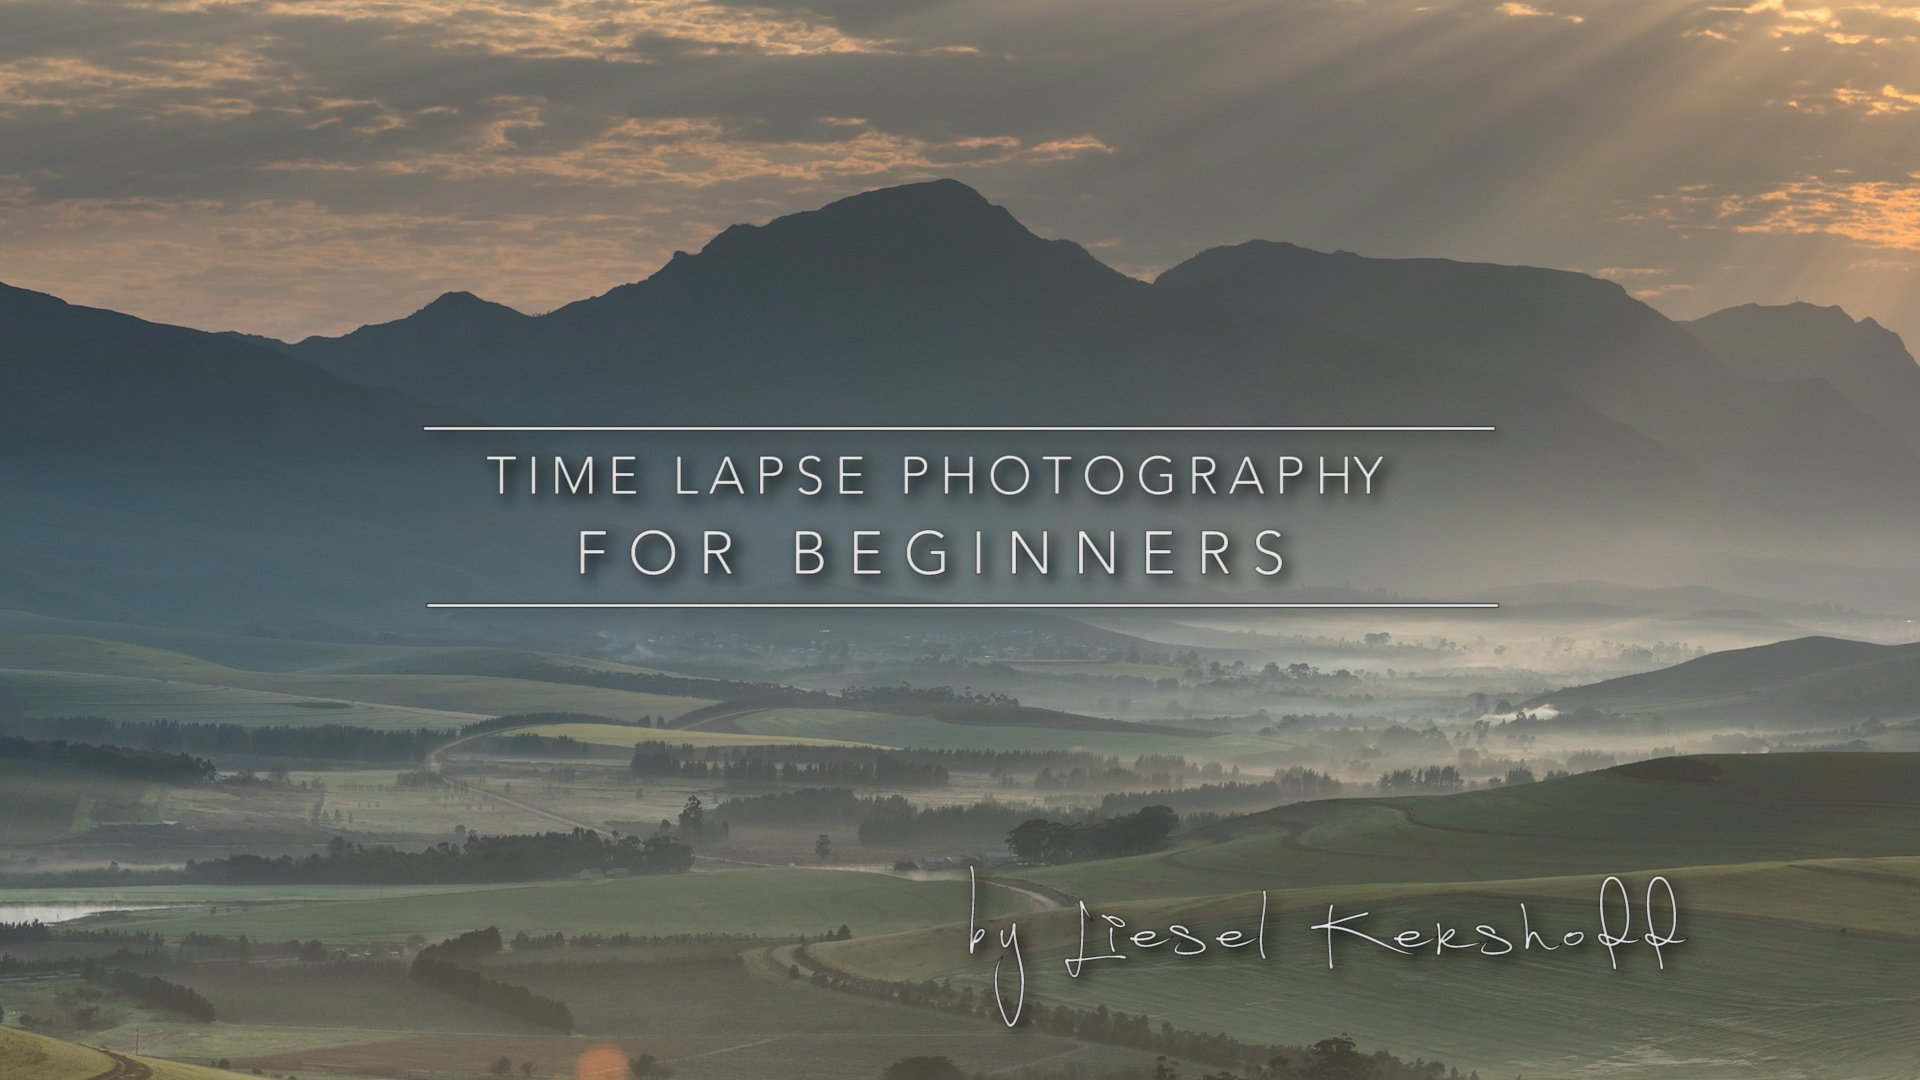 Time Lapse Photography for Beginners